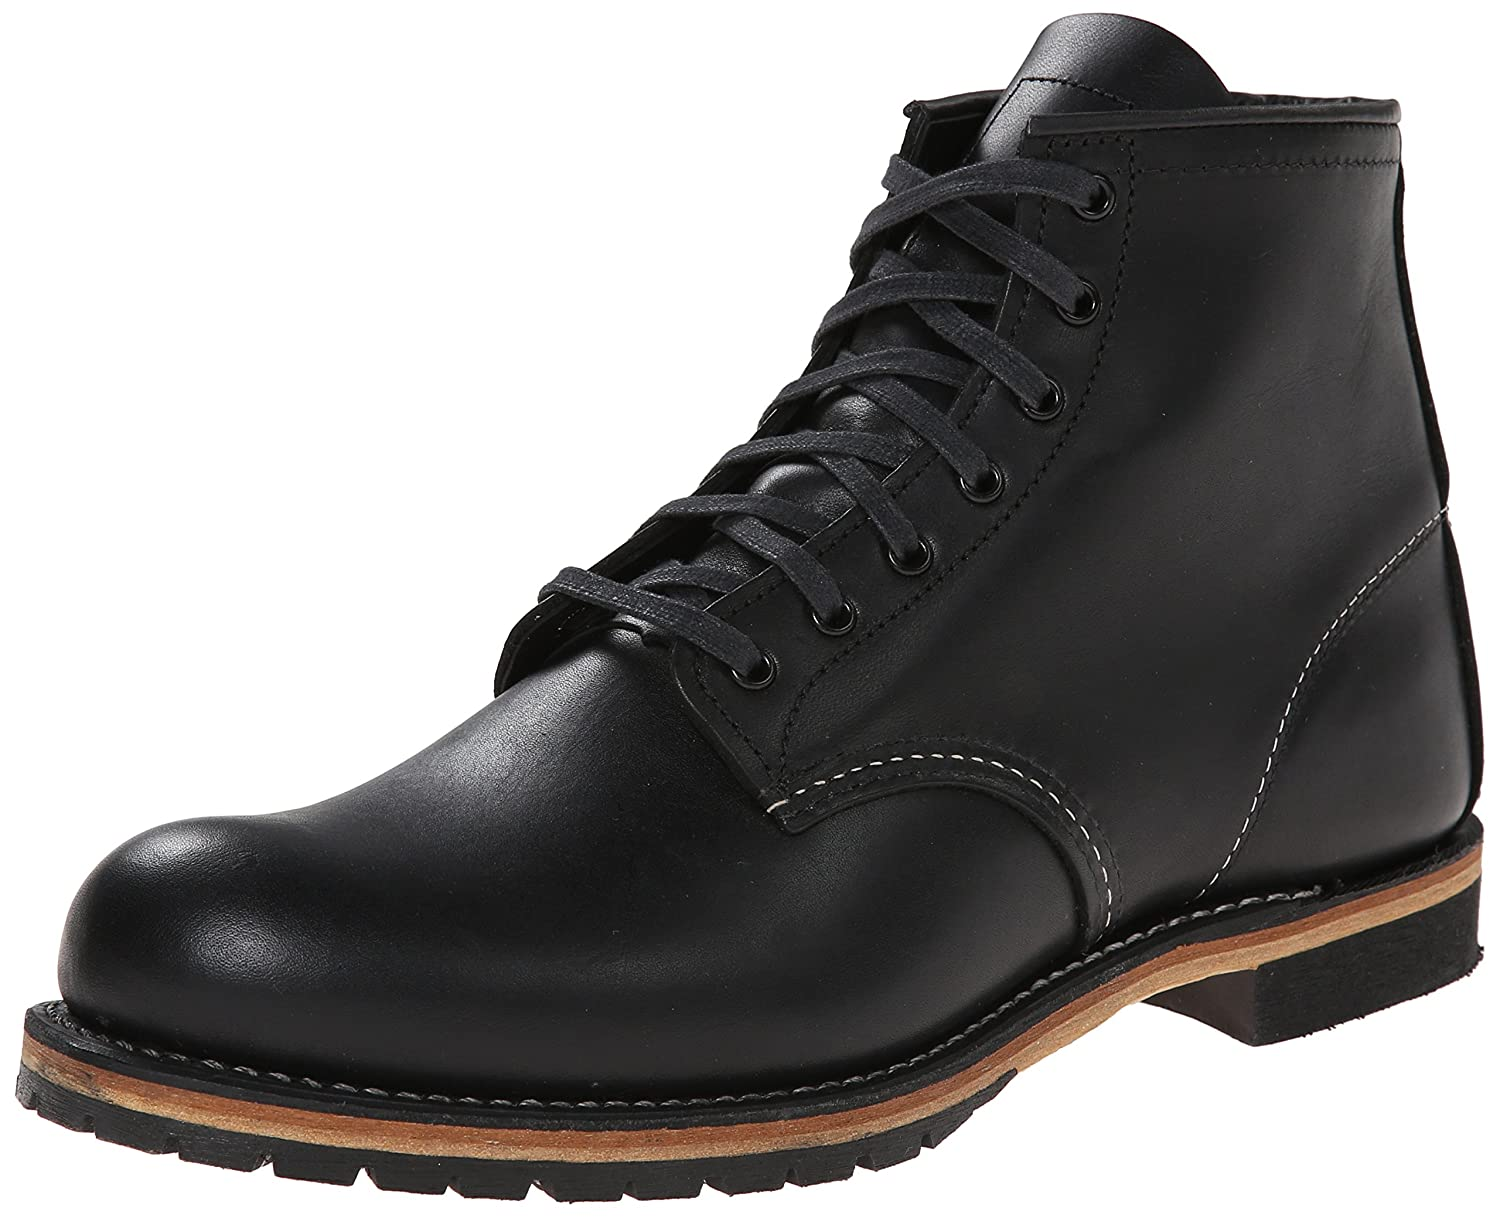 Stacy Adams Men's Victorian Boots and Shoes Red Wing Heritage Mens Beckman Round 6 Boot $397.89 AT vintagedancer.com